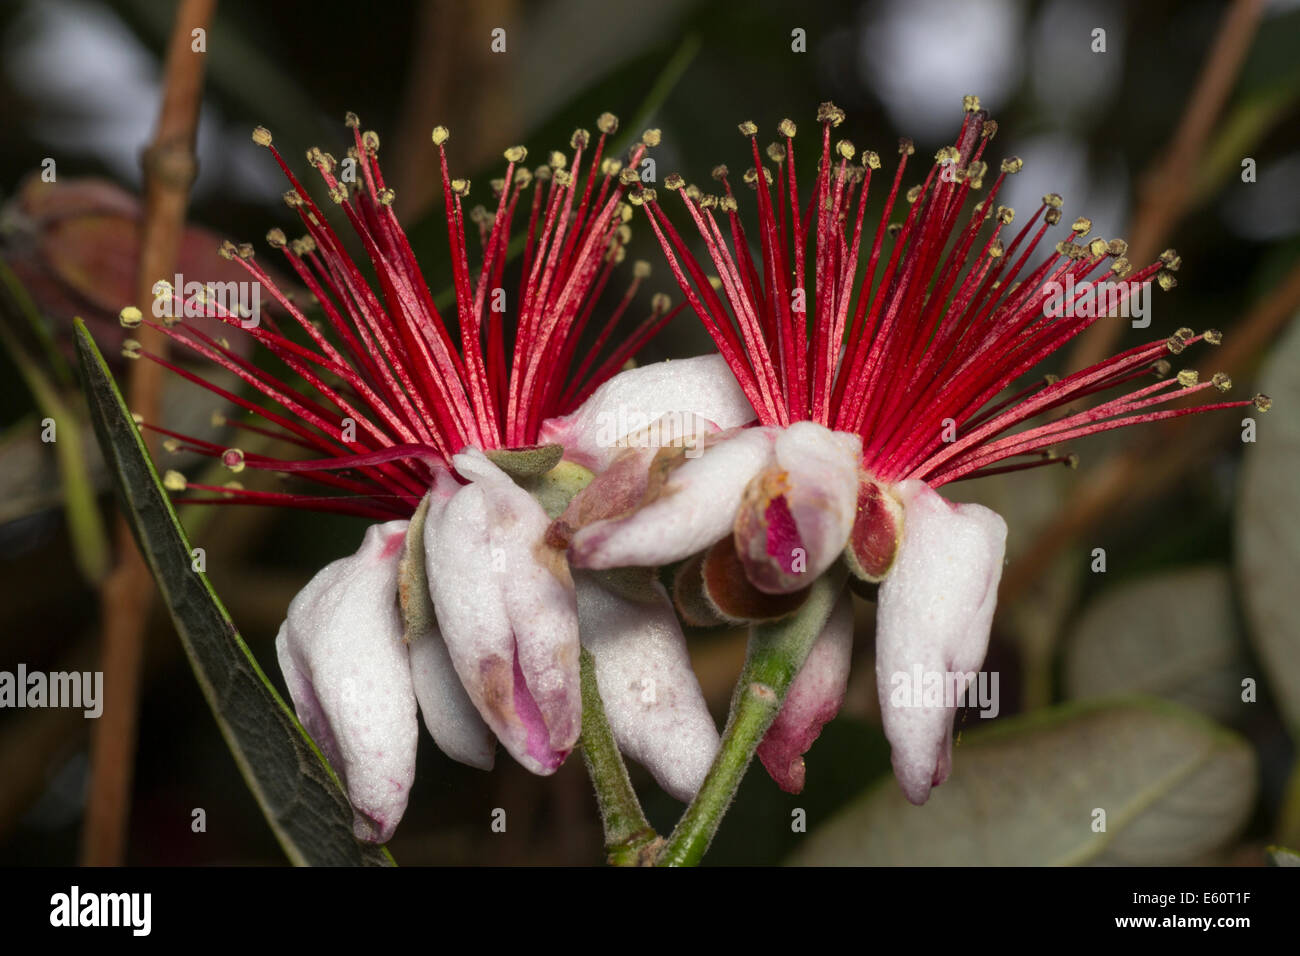 edible-flowers-of-the-pineapple-guava-acca-sellowiana-E60T1F.jpg